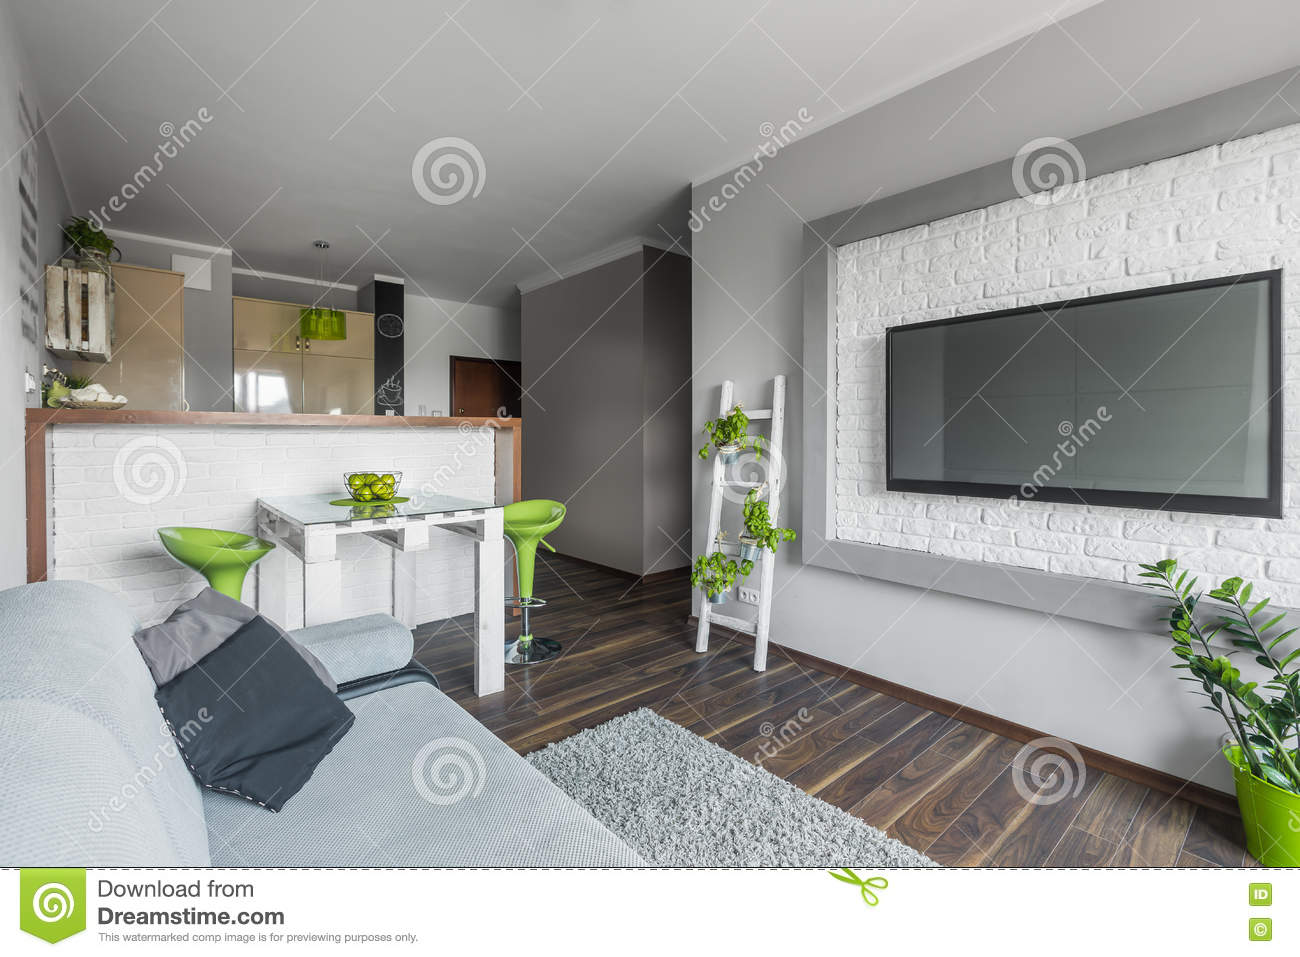 Big Tv In Small Living Room Stock Image Image Of Design Paint 73943087